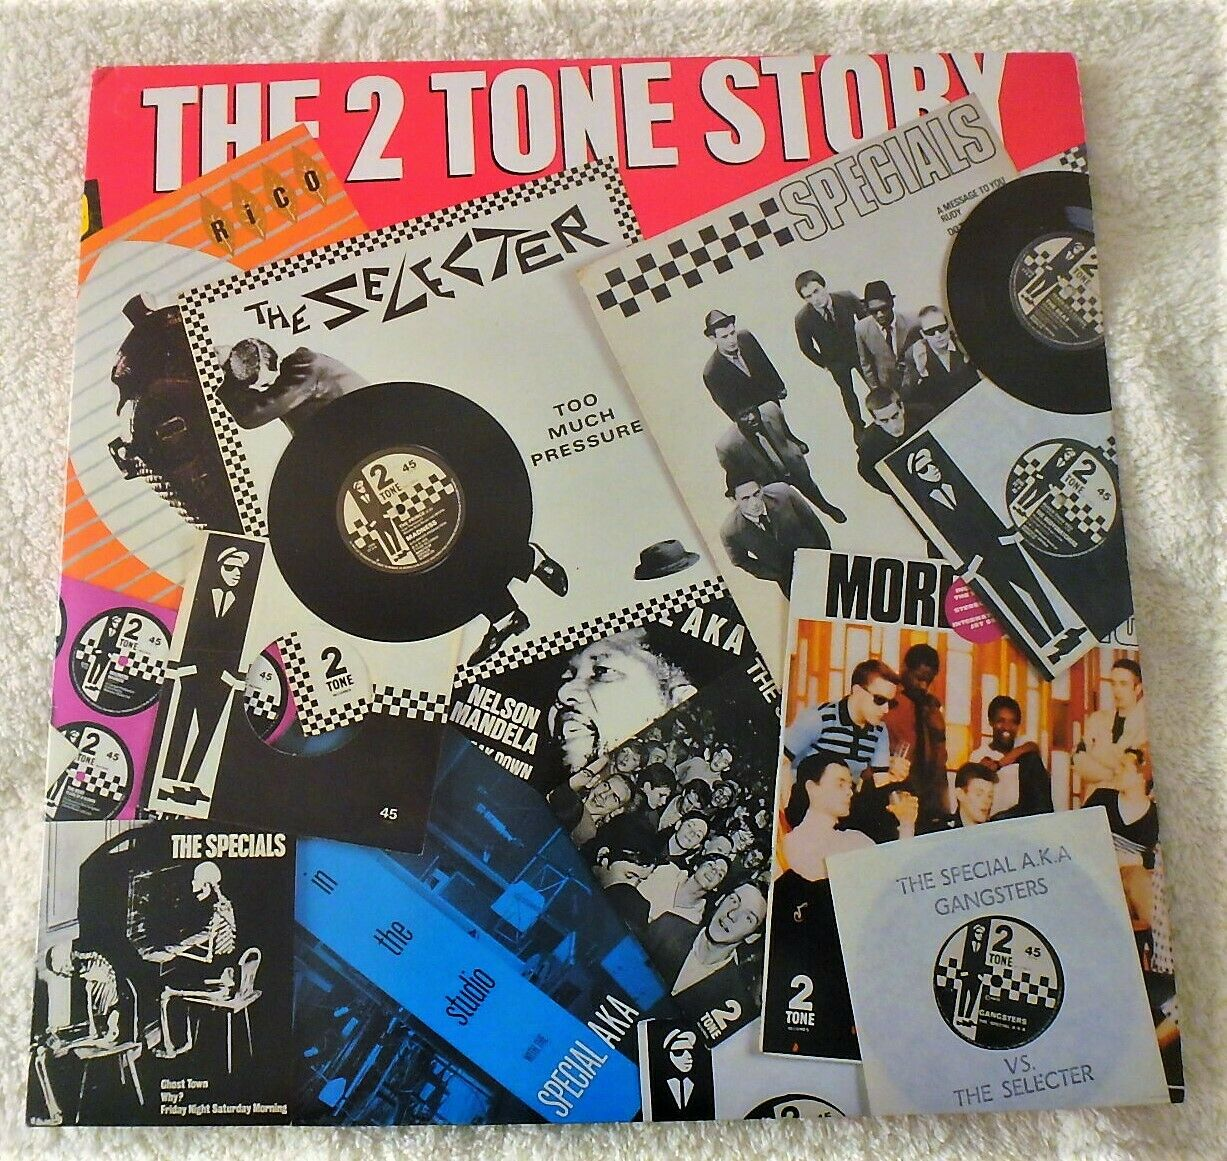 """TWO TONE 2 TONE""""THE 2 TONE STORY""""THE SPECIALS /THE SELECTER /THE BEAT/ MADNESS"""